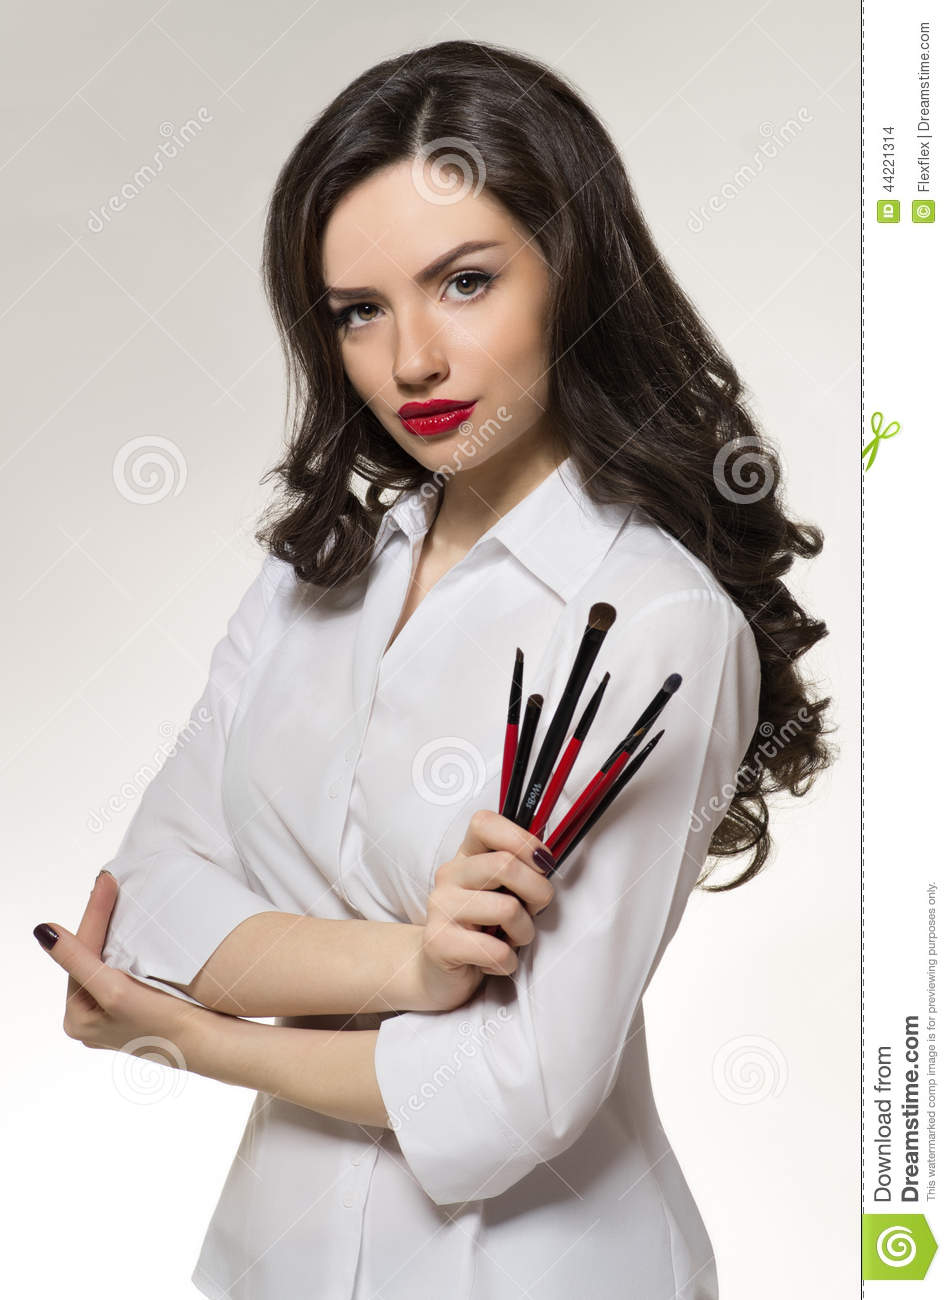 Professional Makeup Artist 11 01 11: Beauty Salon Makeup Artist With Professional Brushes Stock